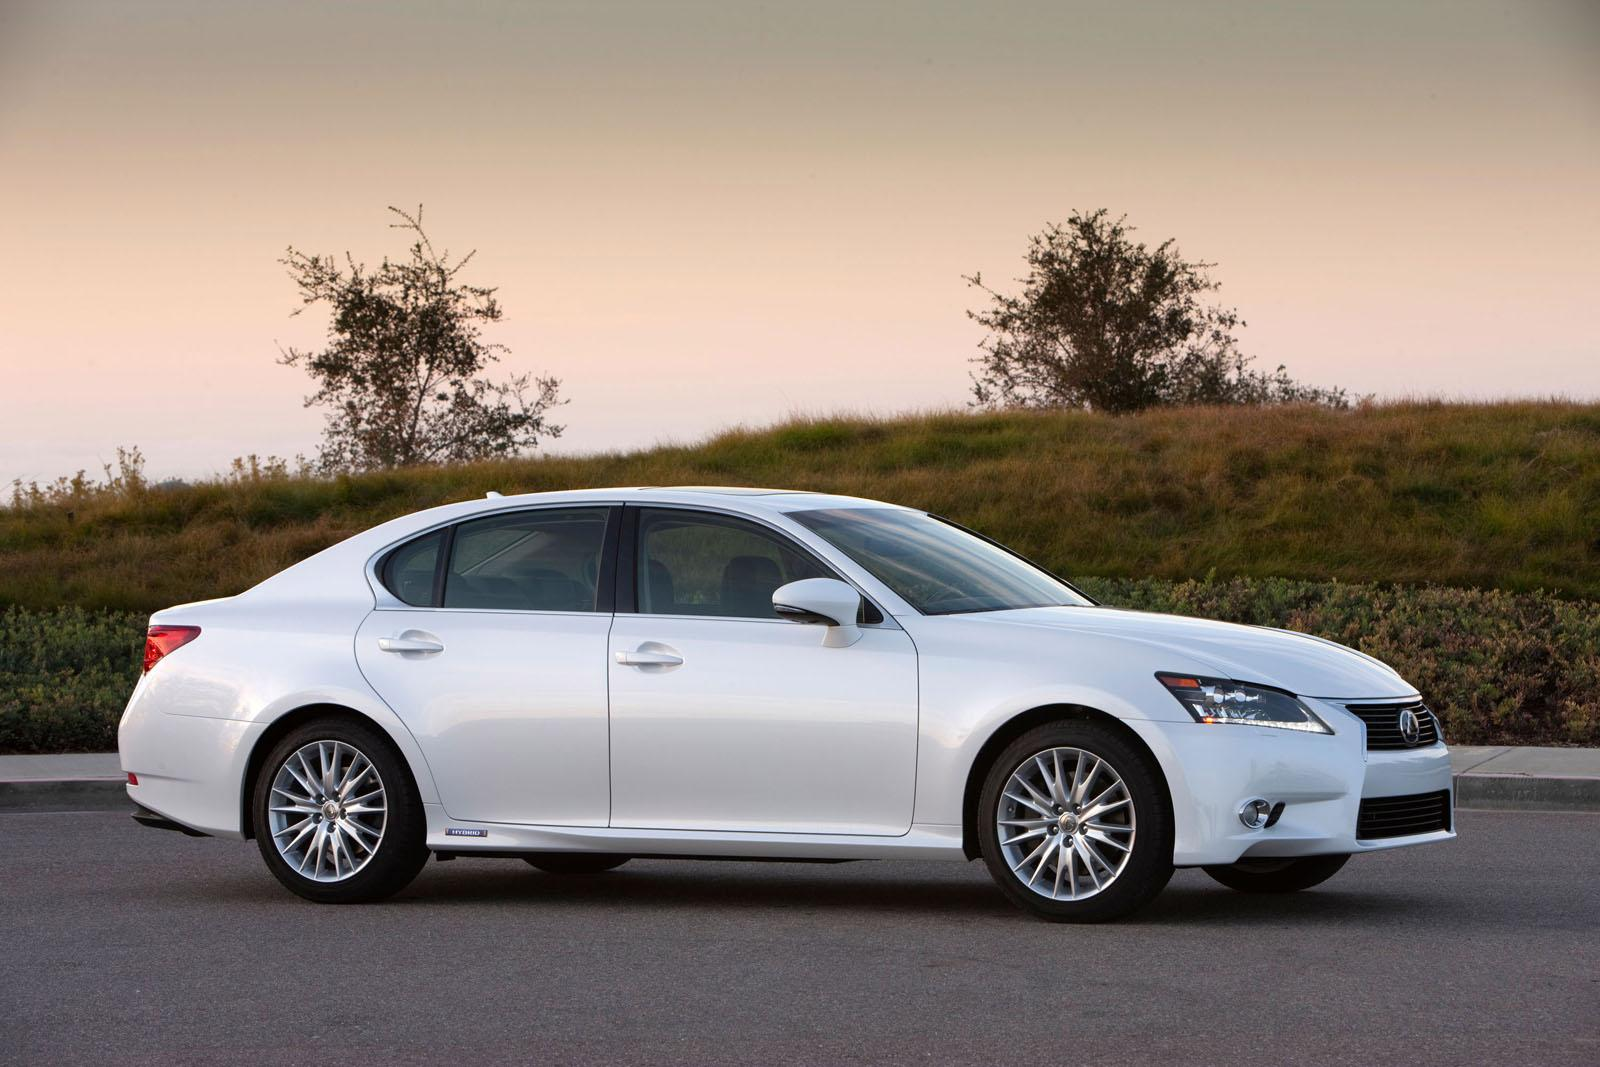 2015 Lexus GS 450h Adds F Sport Styling Performance